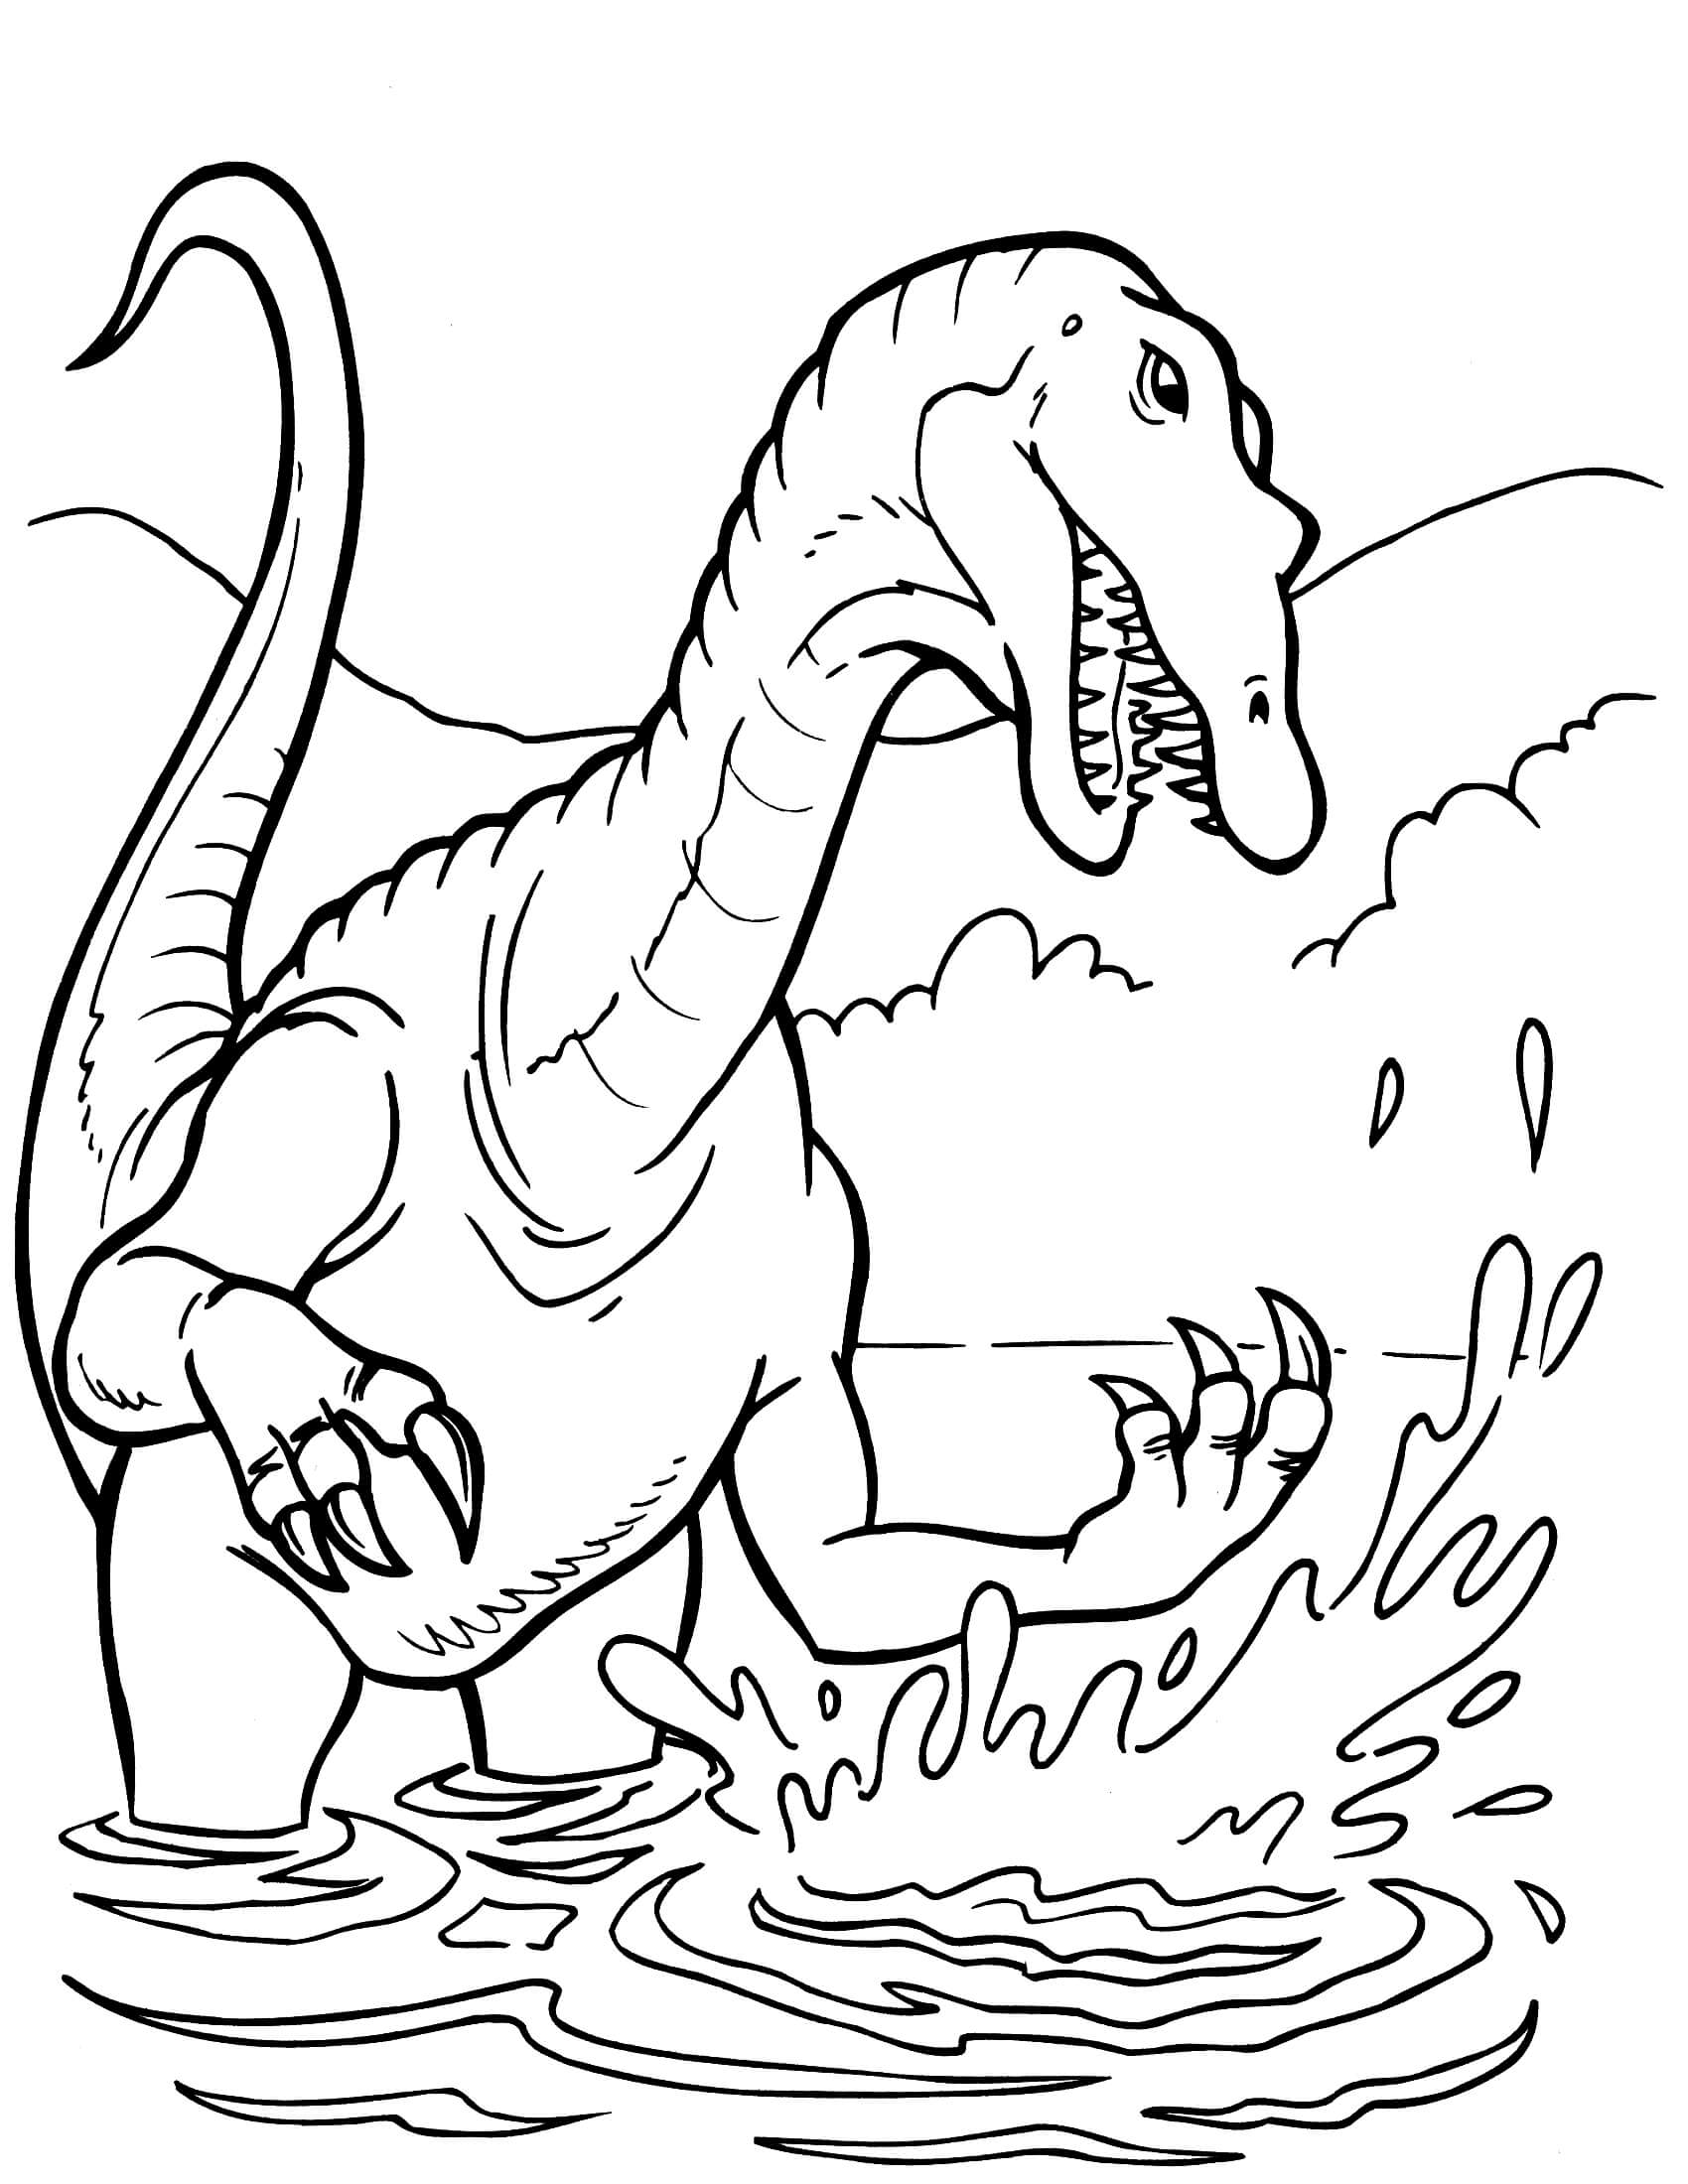 free printable dinosaur coloring pages dinosaur 6 coloringcolorcom free pages printable dinosaur coloring